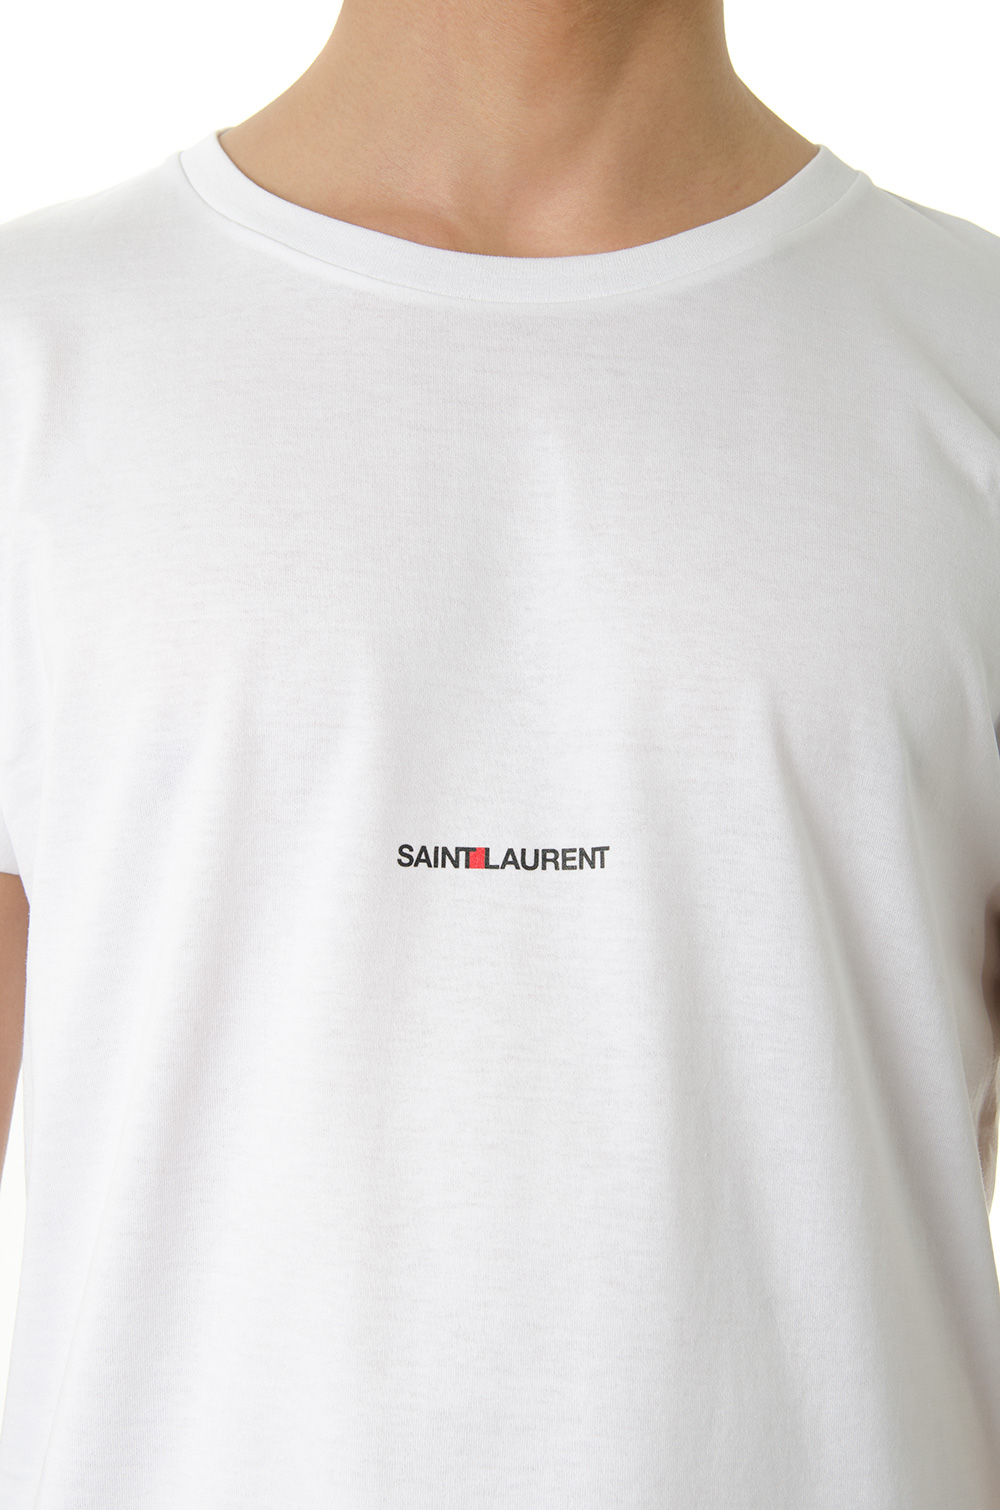 ca302fd1 WHITE COTTON BASIC T-SHIRT WITH LOGO SS 2019 - SAINT ...